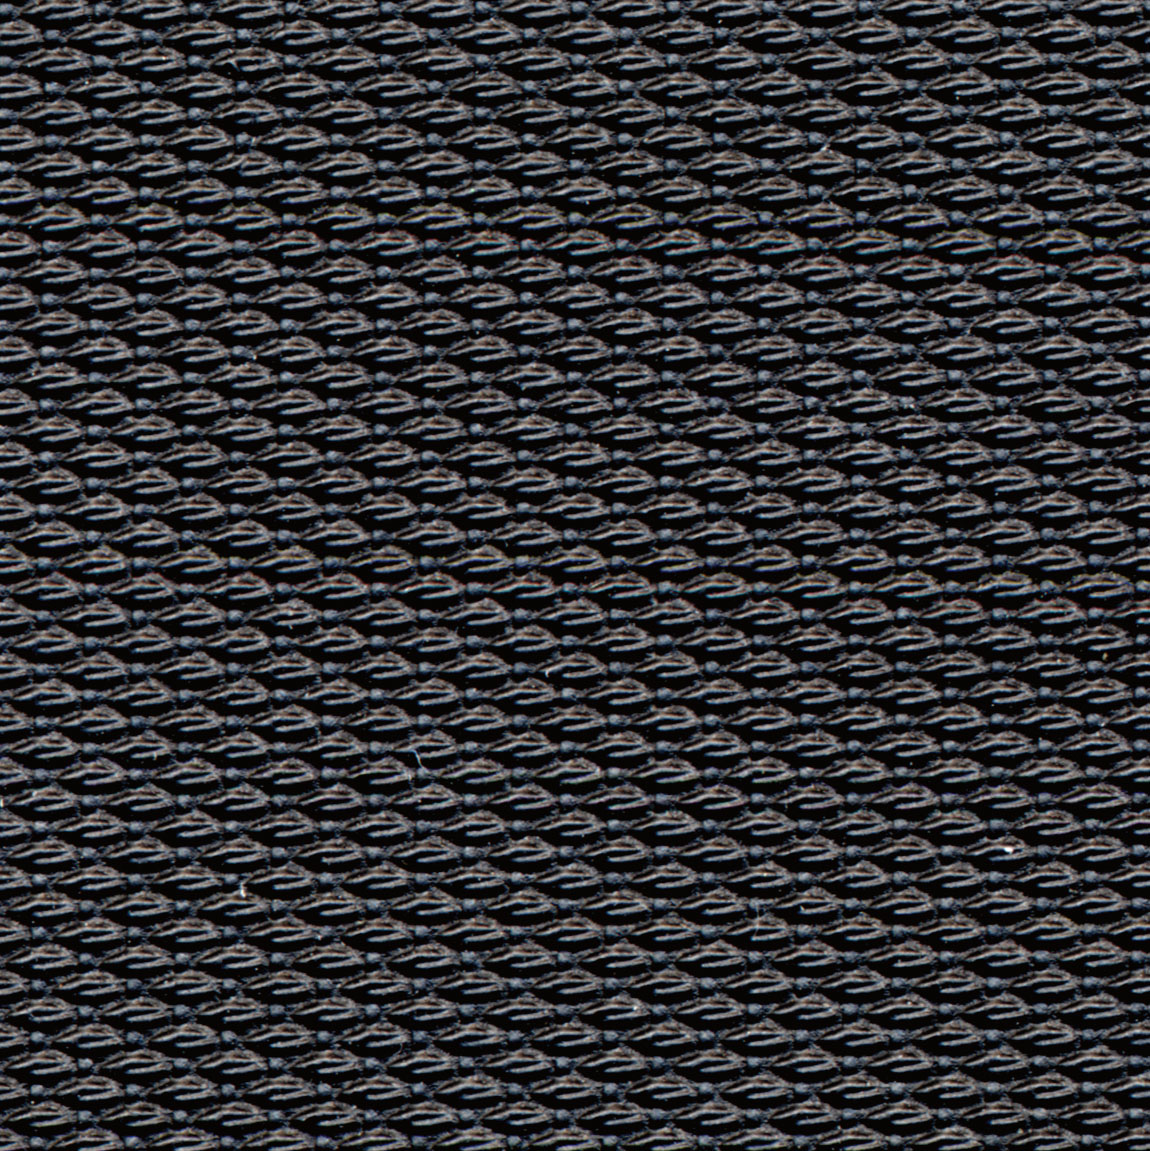 rubber texture background, texture , rubber, download photo, background, texture